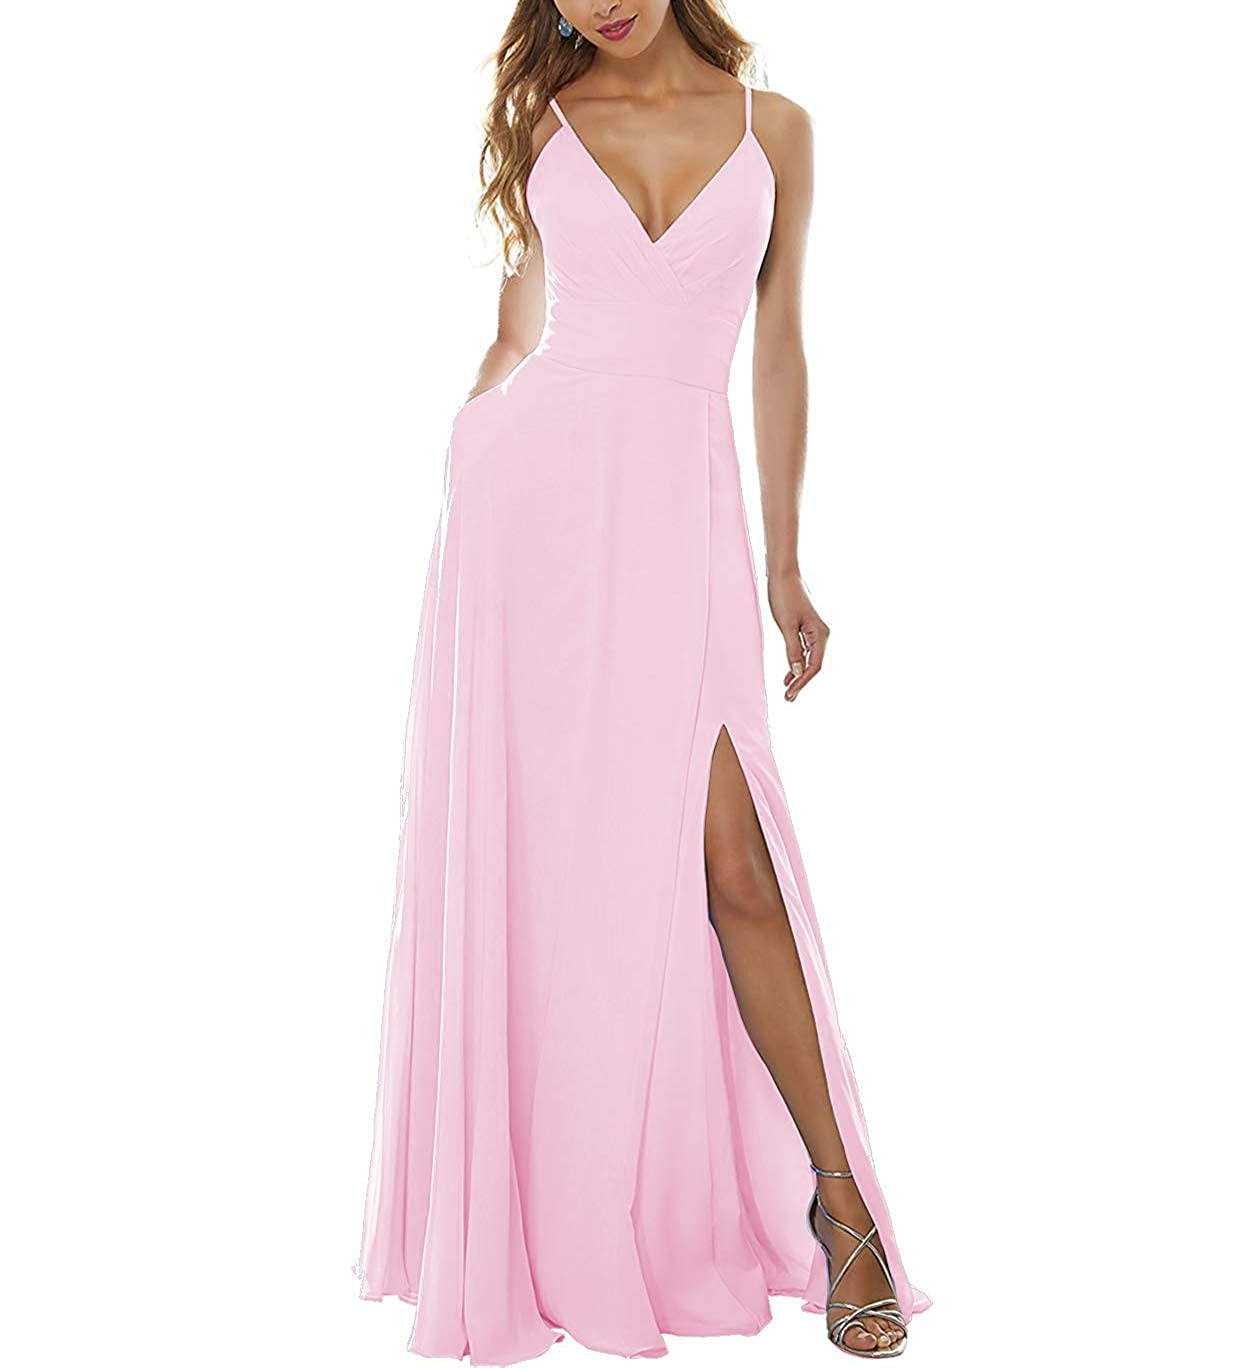 Light Pink Stylefun Women's Side Split Bridesmaid Gowns VNeckline Spaghetti Straps Long Prom Party Dresses KN004